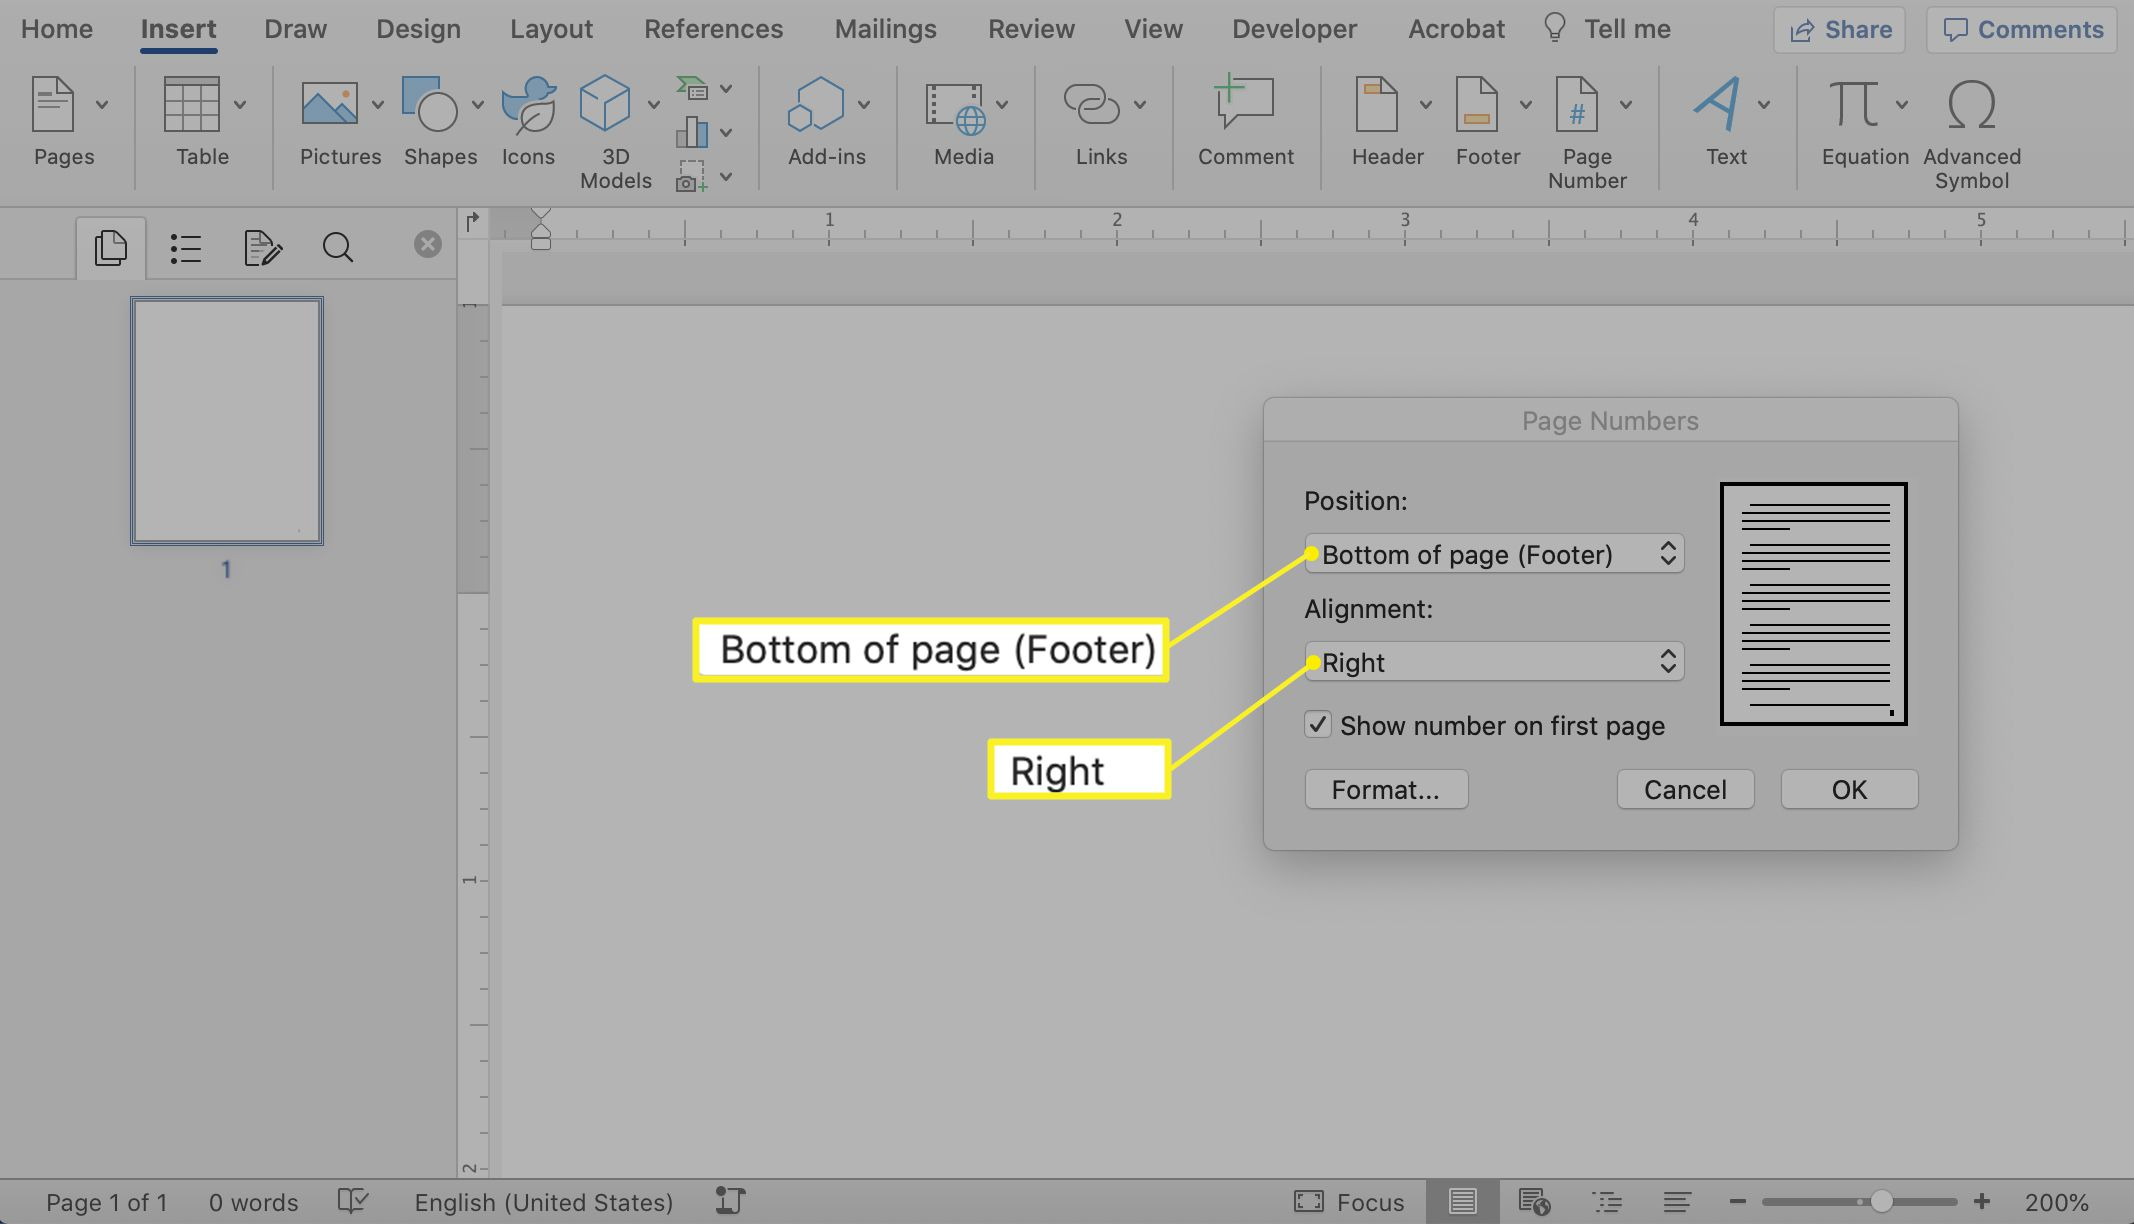 The Page Numbers pop-up window in Microsoft Word